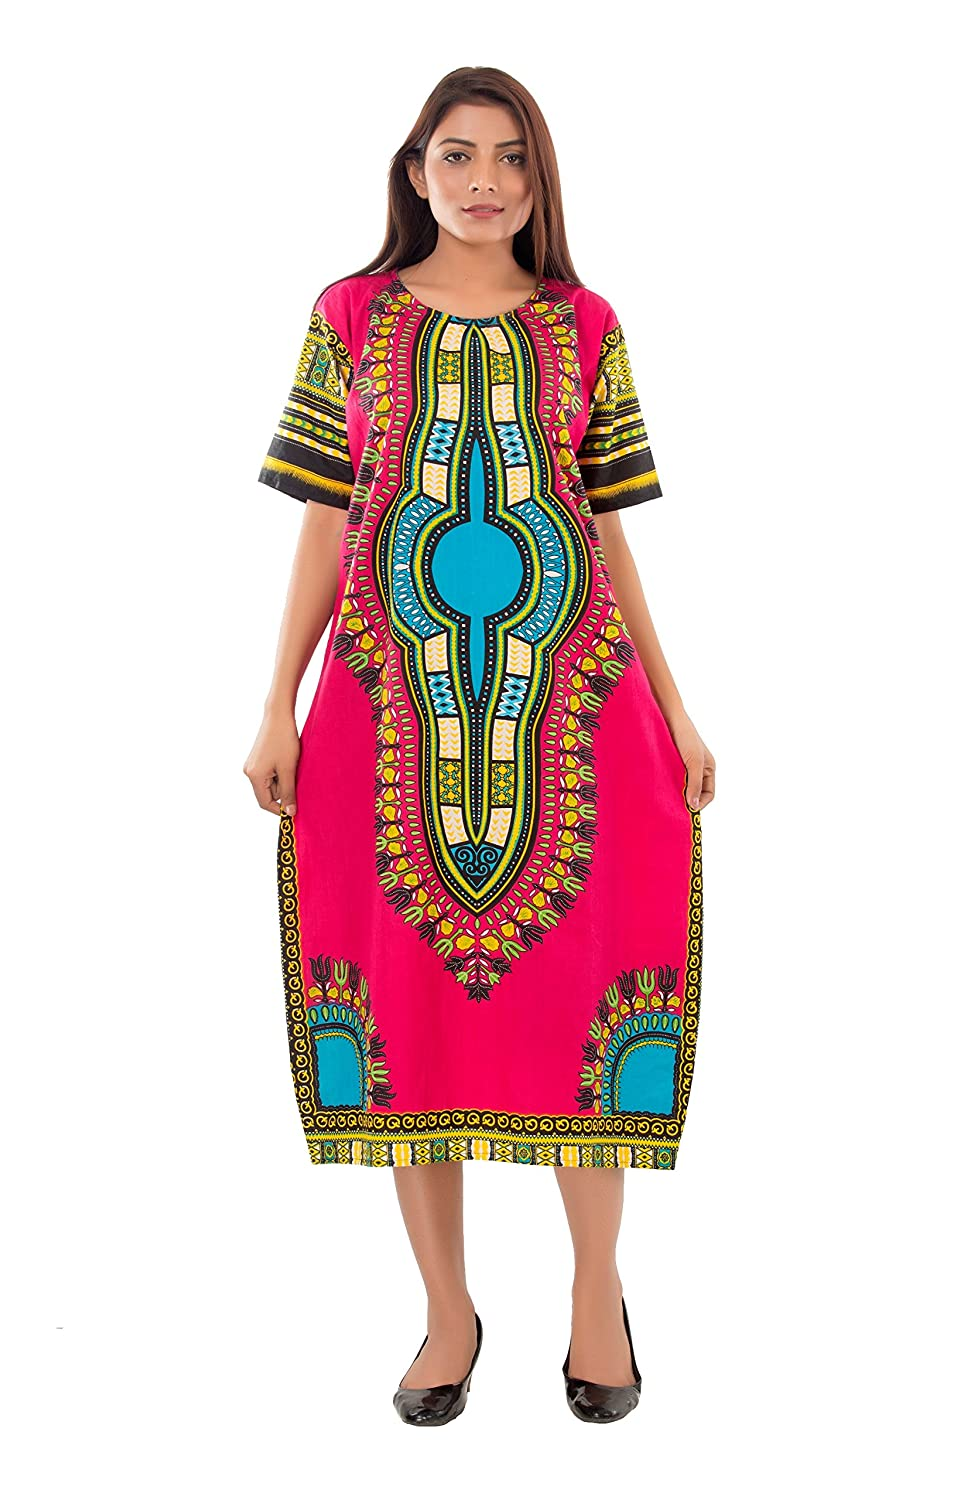 eb70fc6f7a7 Handicraft-Palace Pink Dashiki Floral Printed Long Tunic Maxi Dressing Gown  Plus Size African Dress Women s Cotton Sexy Short Sleeve One Piece Dress  Tunic ...